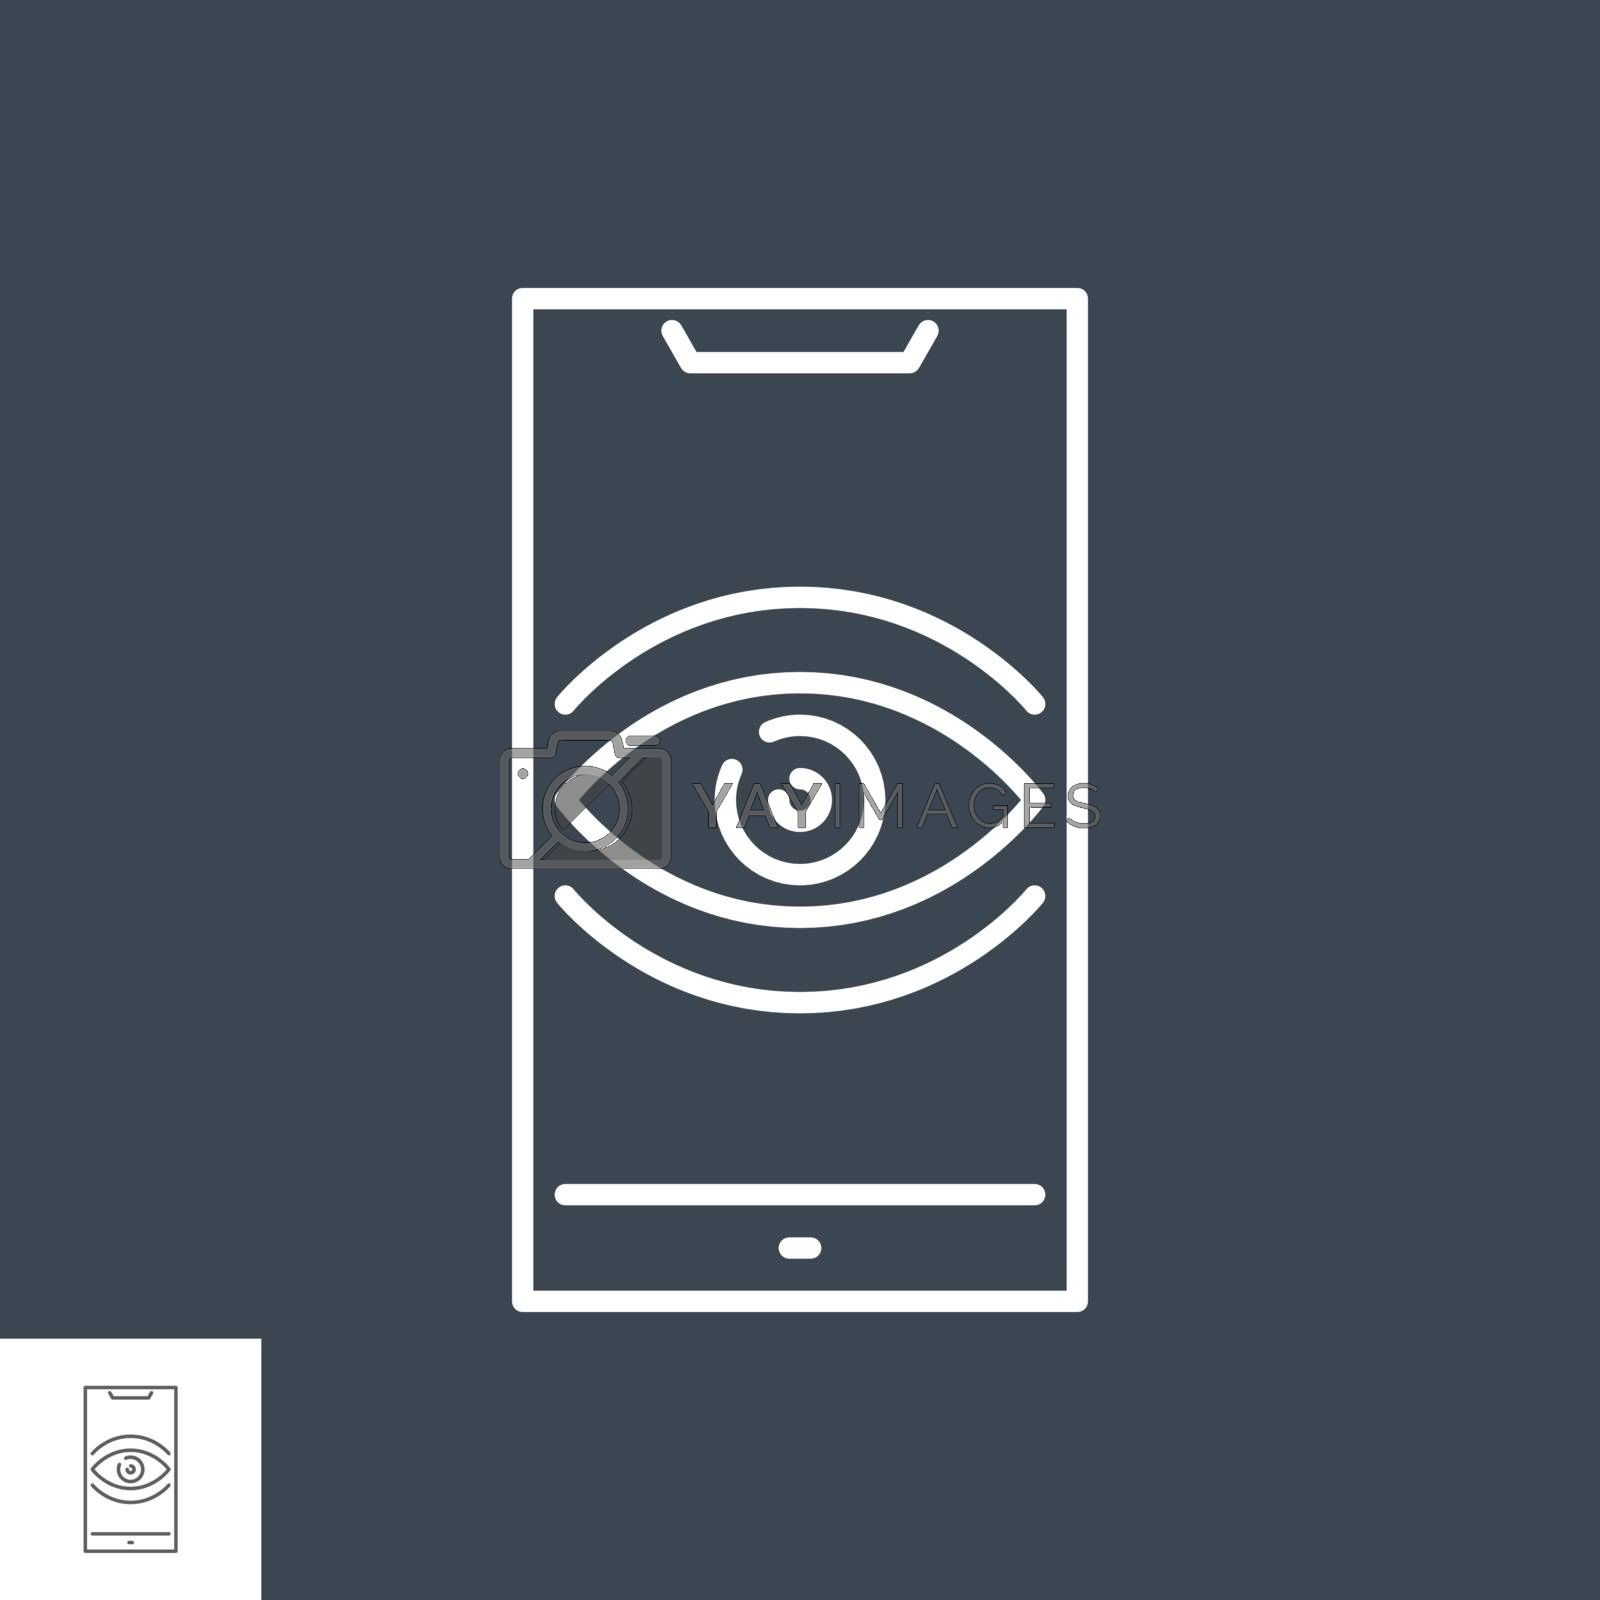 Surveillance smartphone related vector thin line icon. Eye on smartphone screen symbolizing user tracking. Isolated on black background. Editable stroke. Vector illustration.